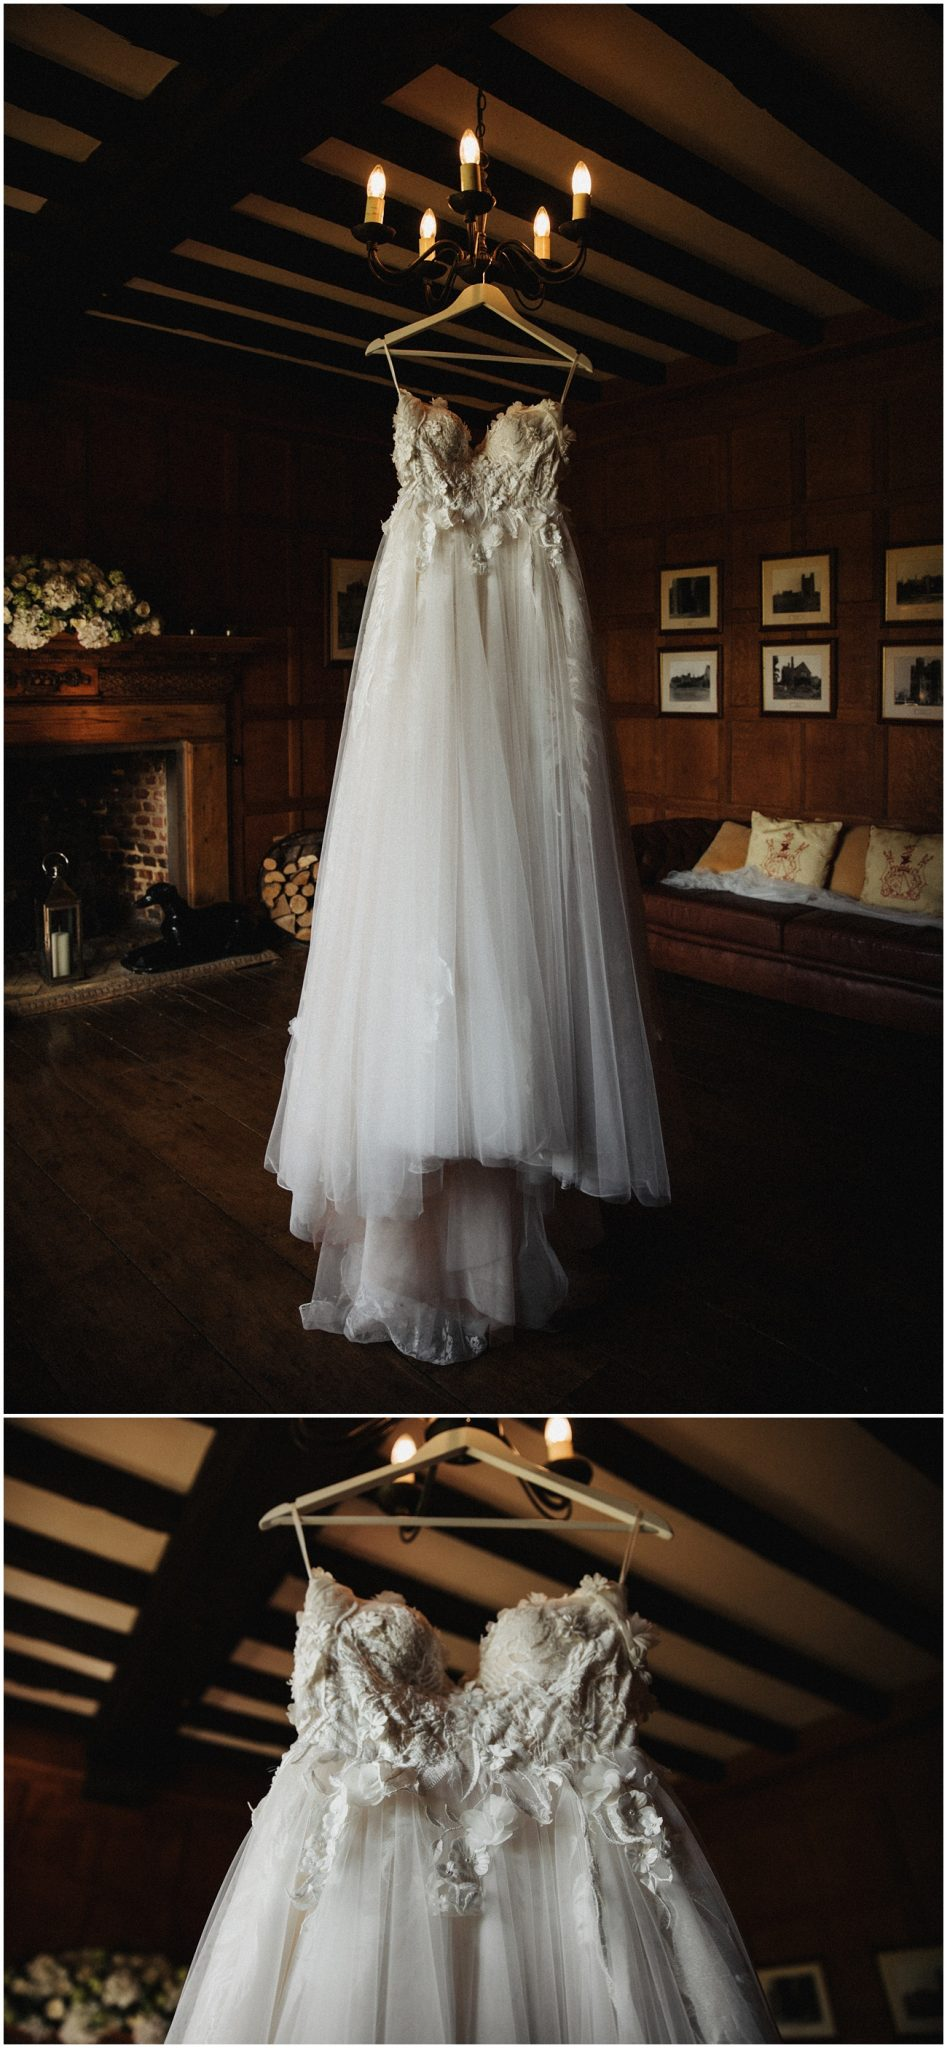 The brides wedding dress hanging from a chandelier at Leez Priory